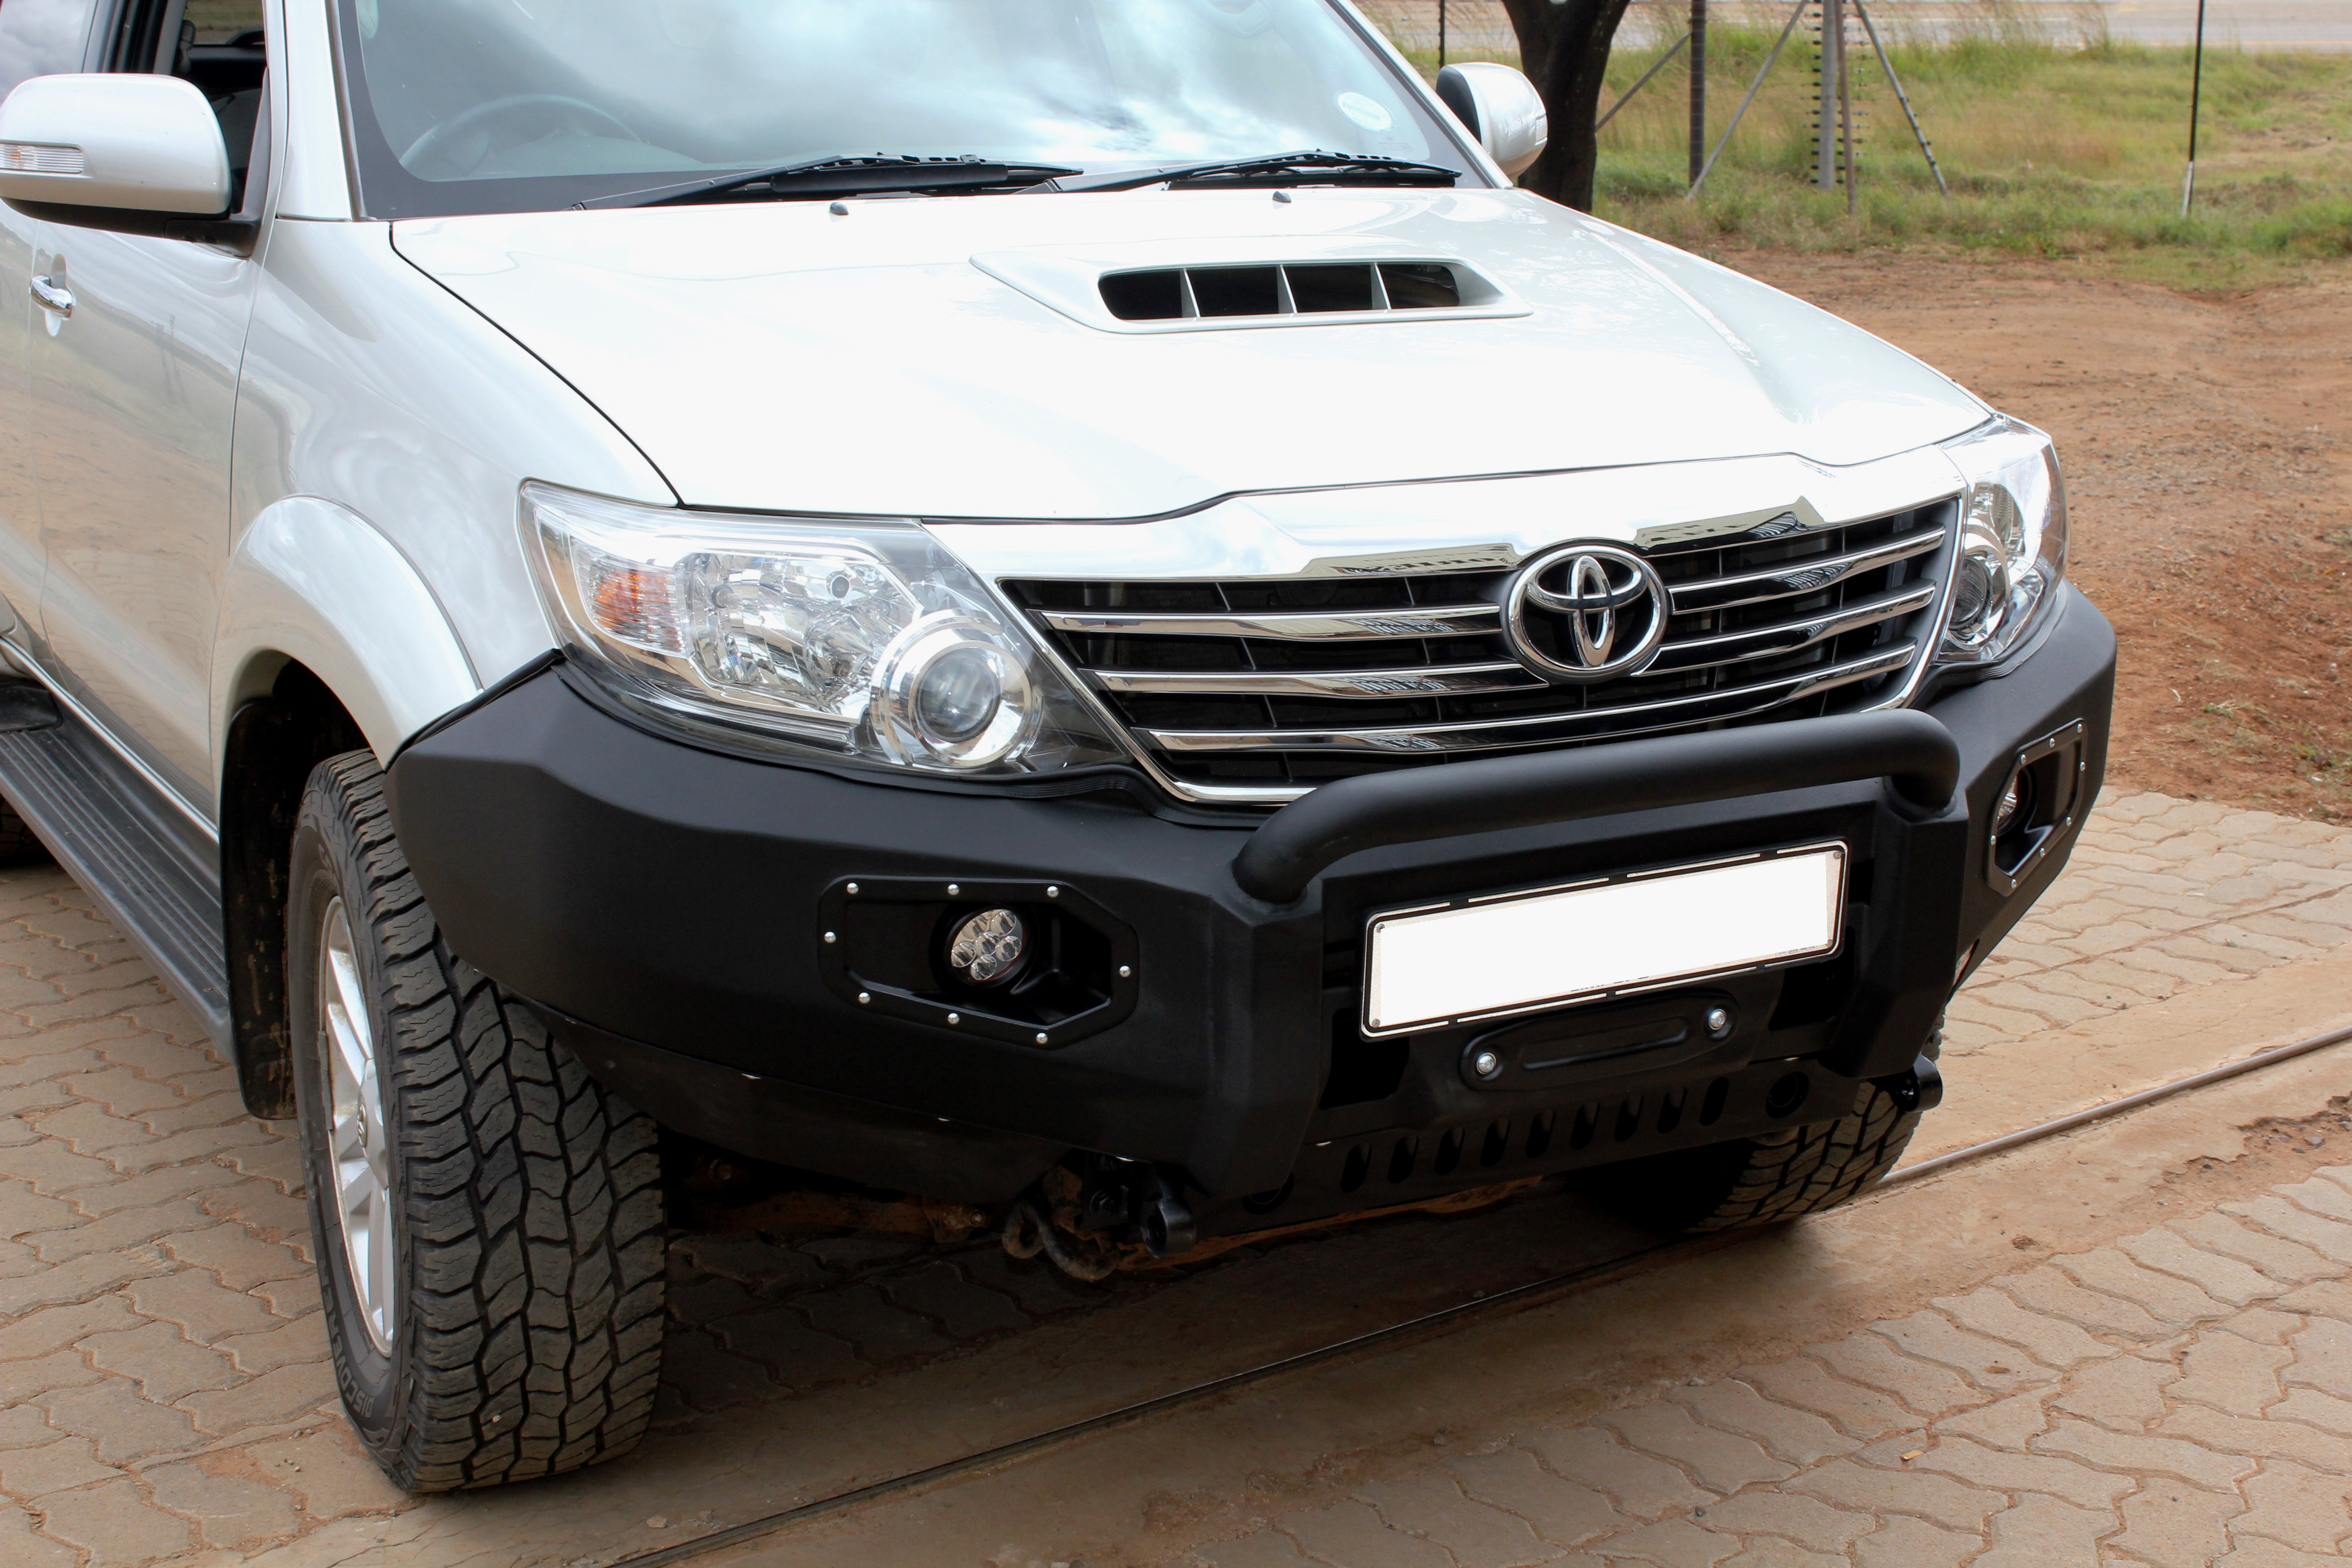 front-replacement-bumper-k9-fortuner-2011-2015-black-with-nudge